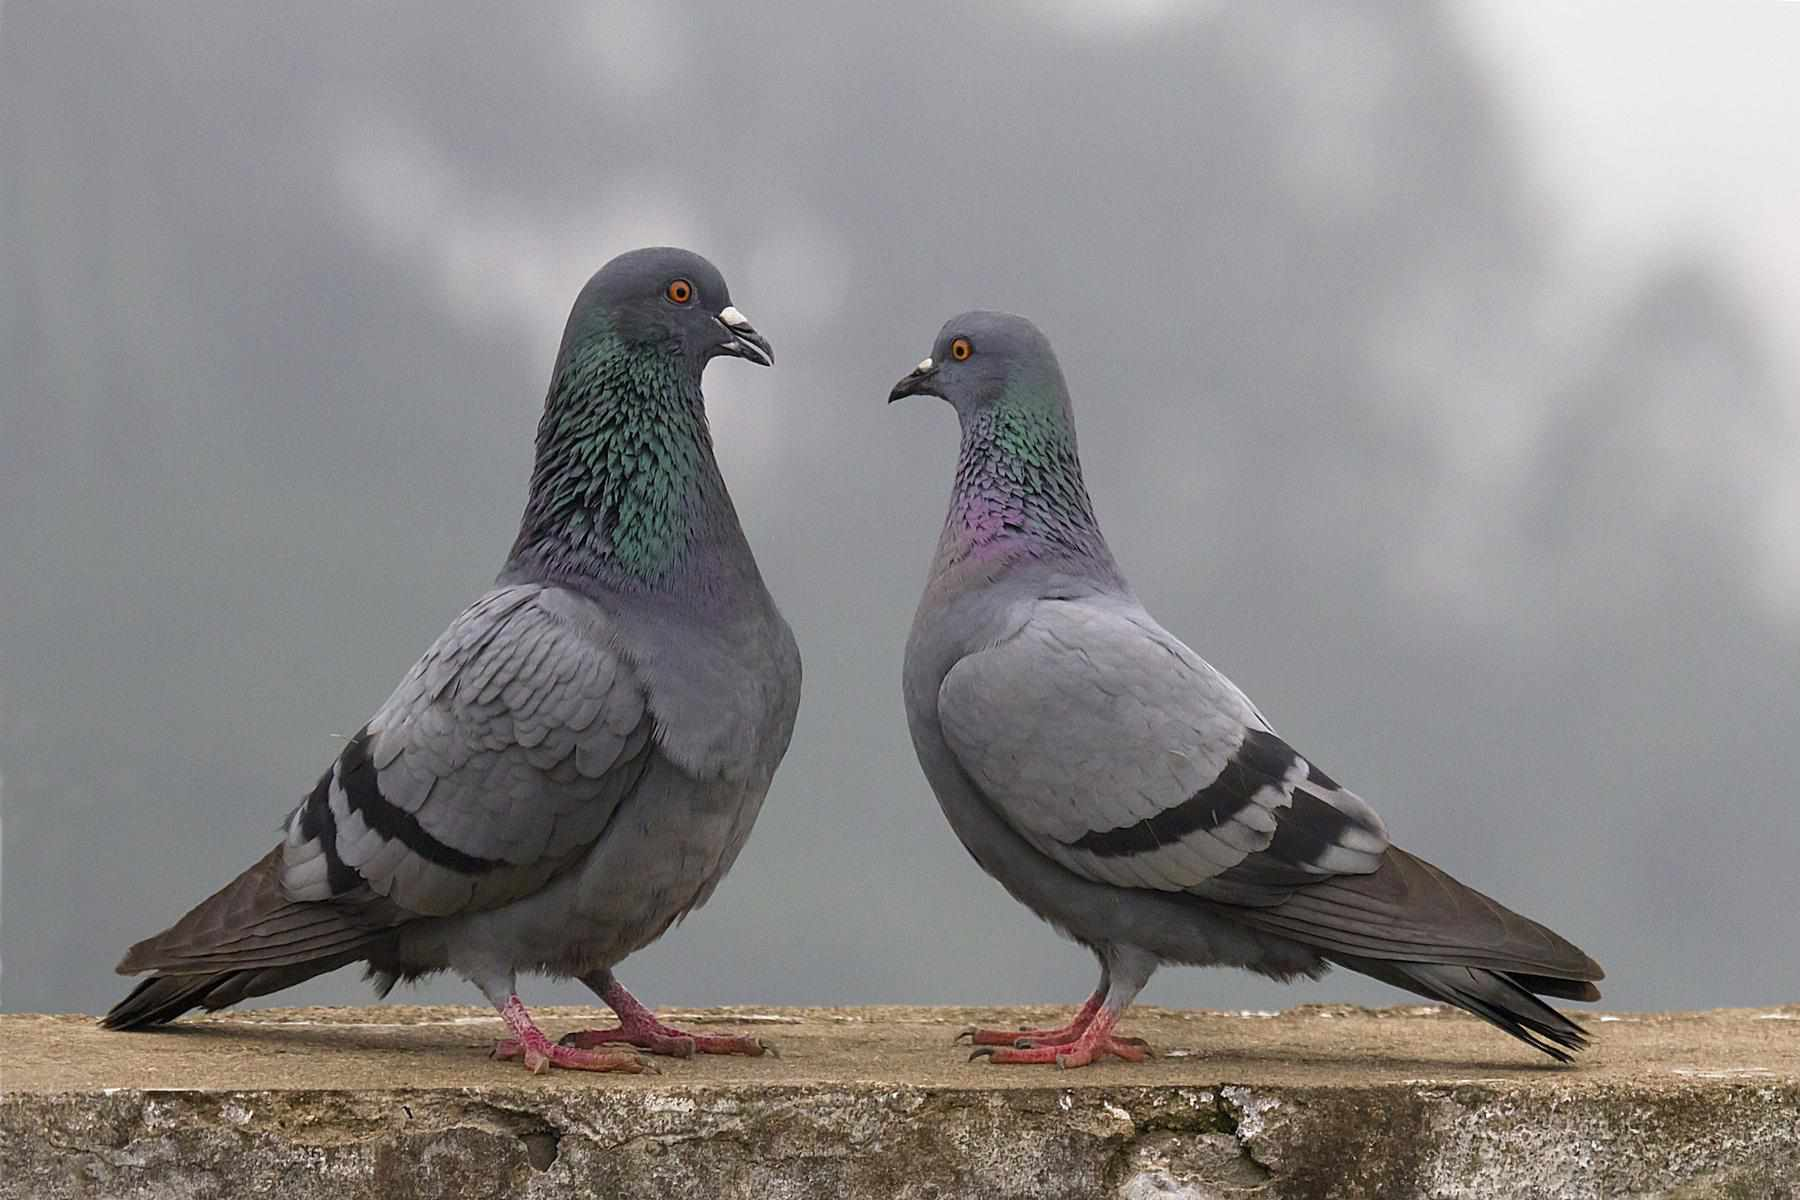 Two pigeons standing on a concrete wall